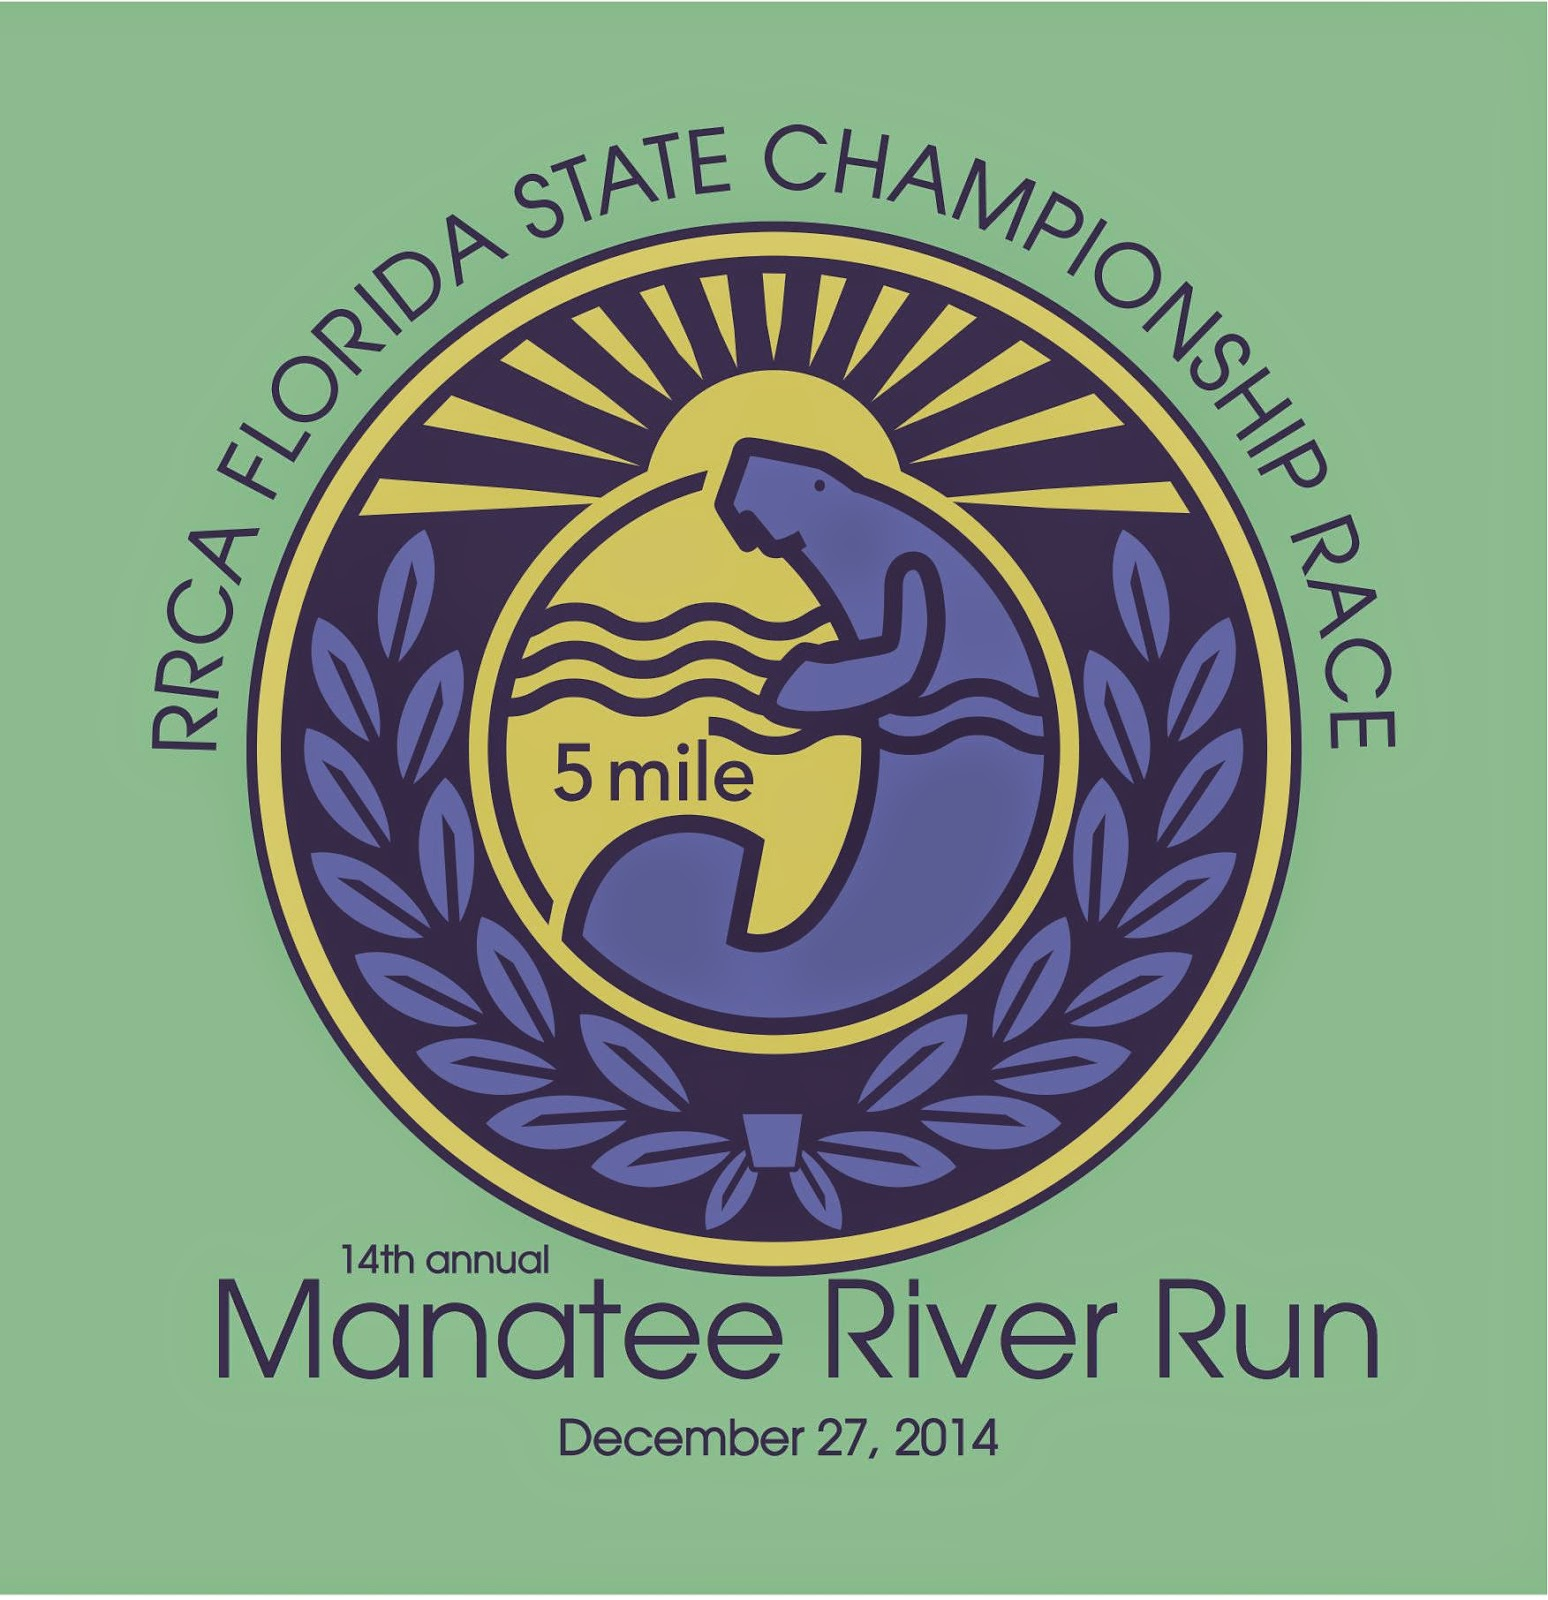 Manatee River Run